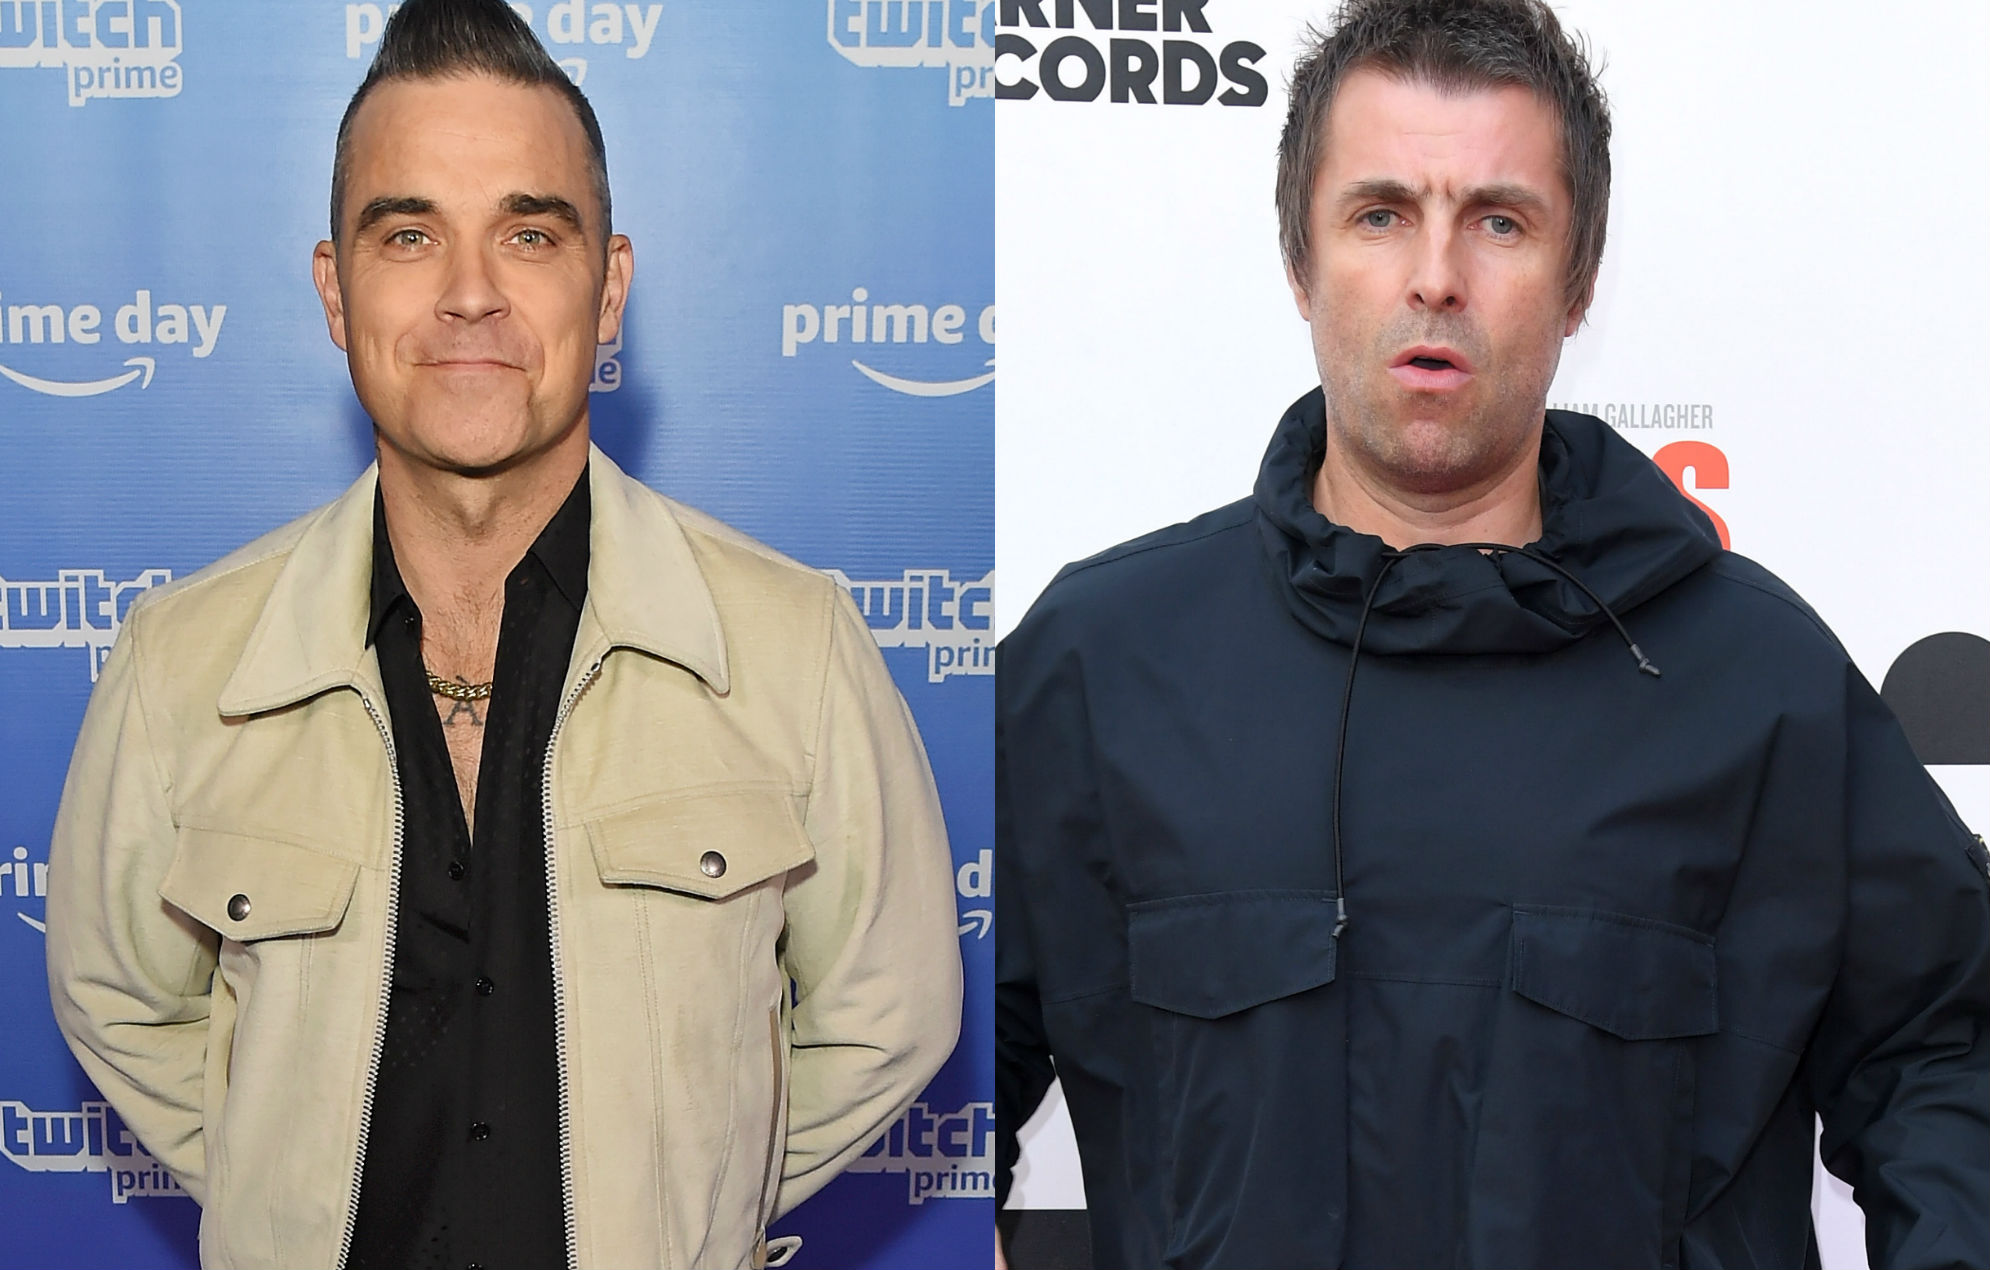 Robbie Williams, Liam Gallagher